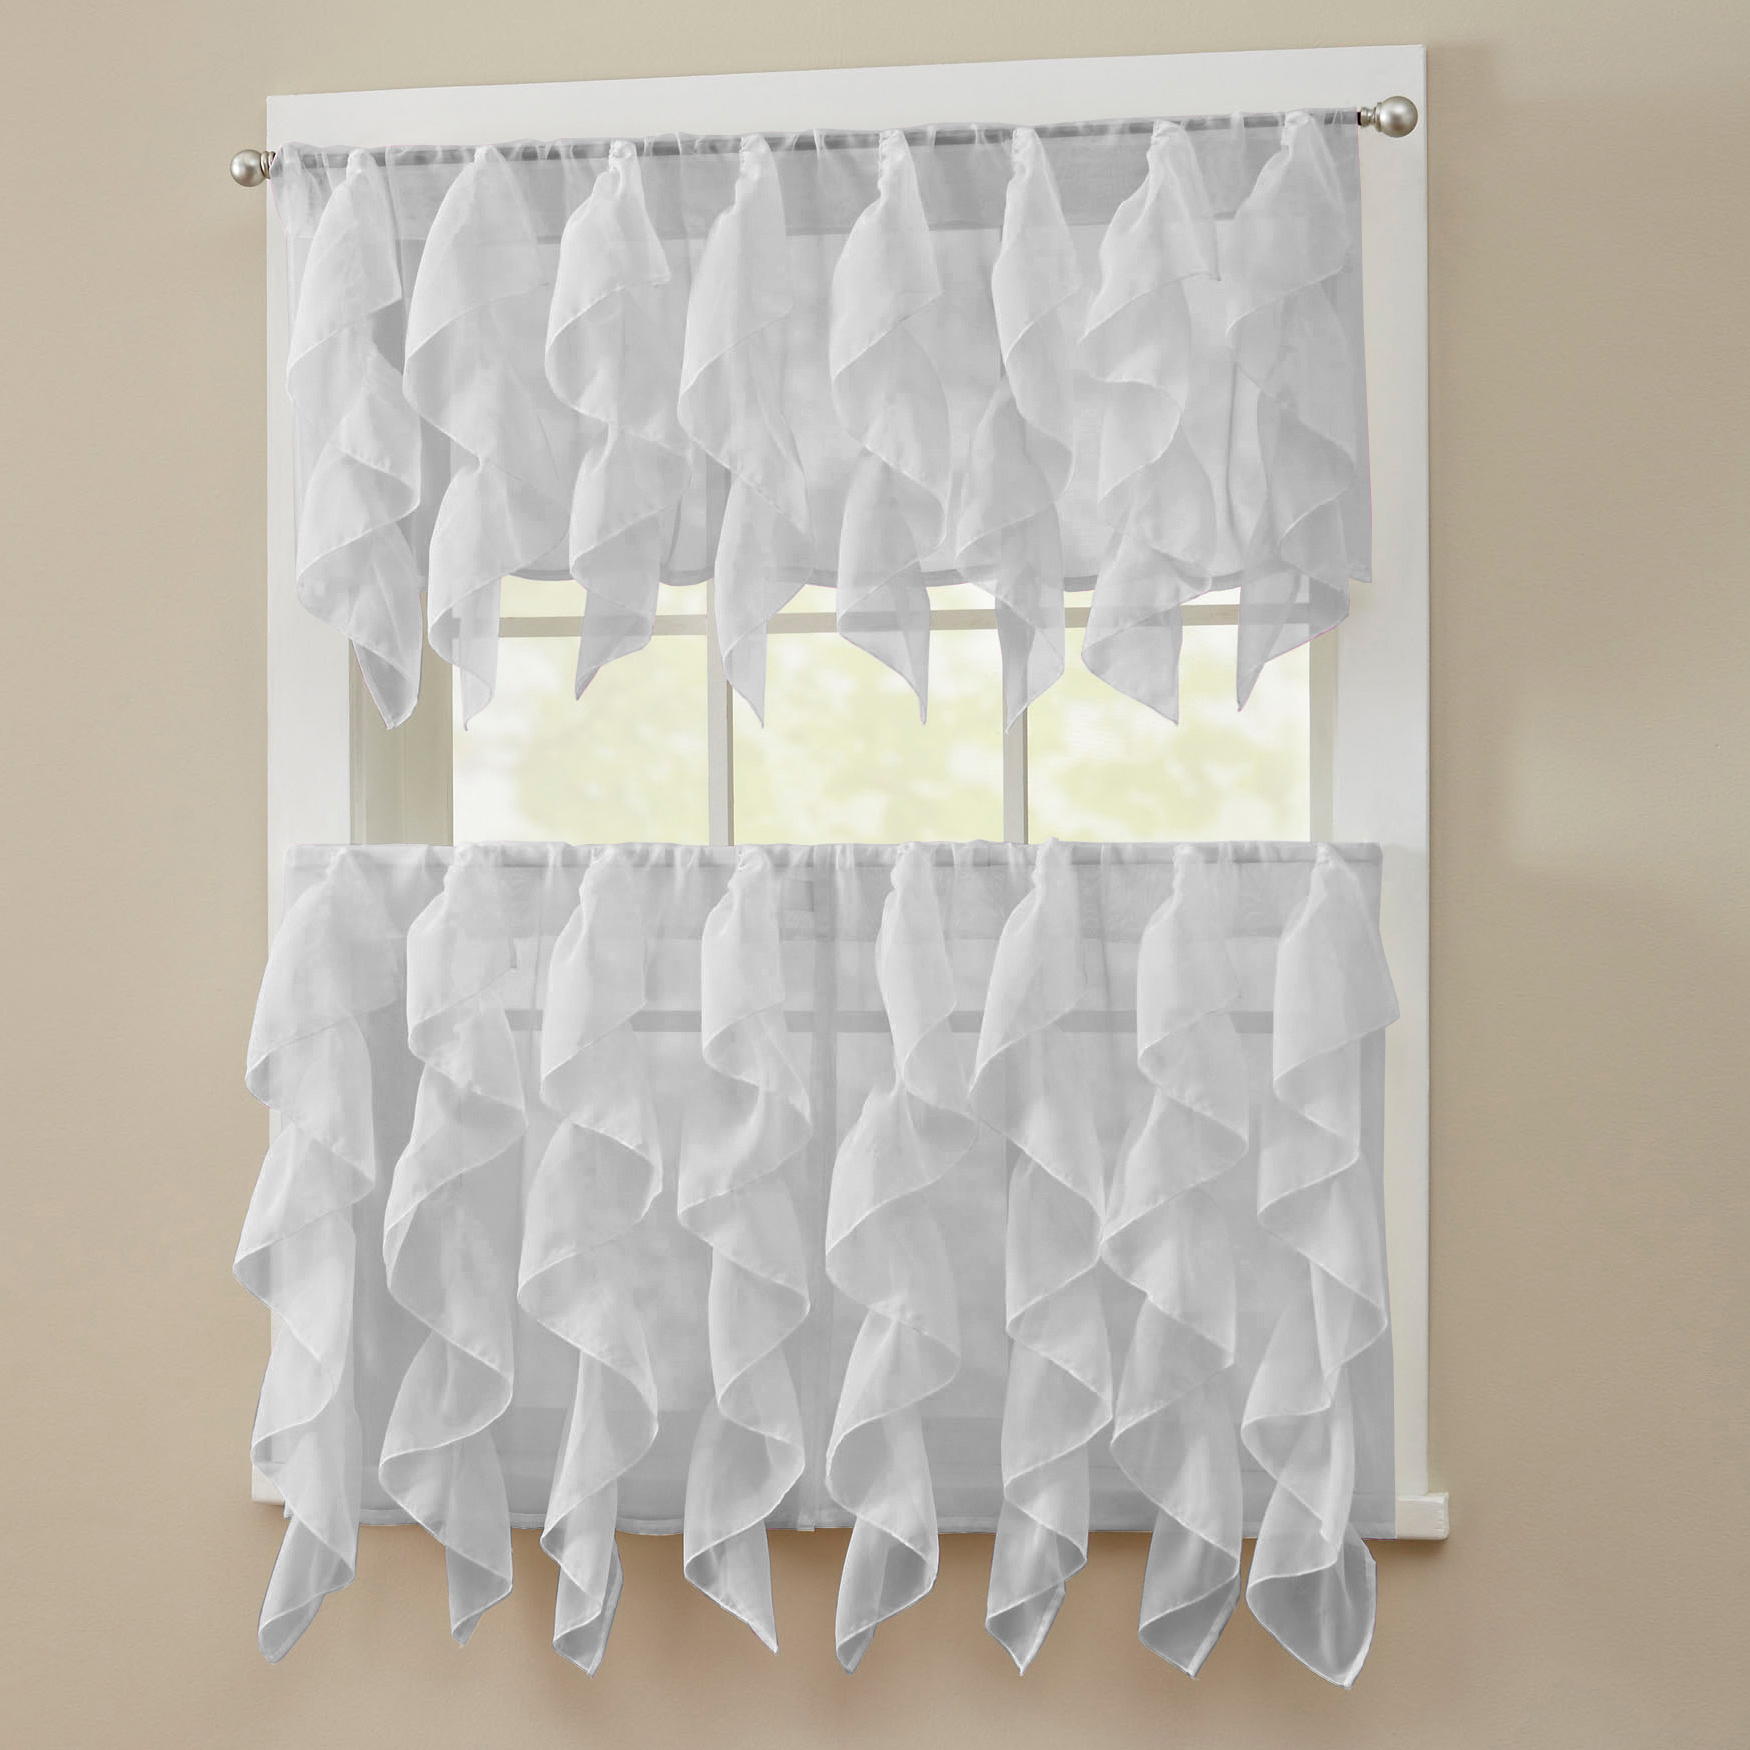 Details About Sheer Voile Vertical Ruffle Window Kitchen Curtain Tiers Or Valance Silver With 2021 Silver Vertical Ruffled Waterfall Valance And Curtain Tiers (View 5 of 20)